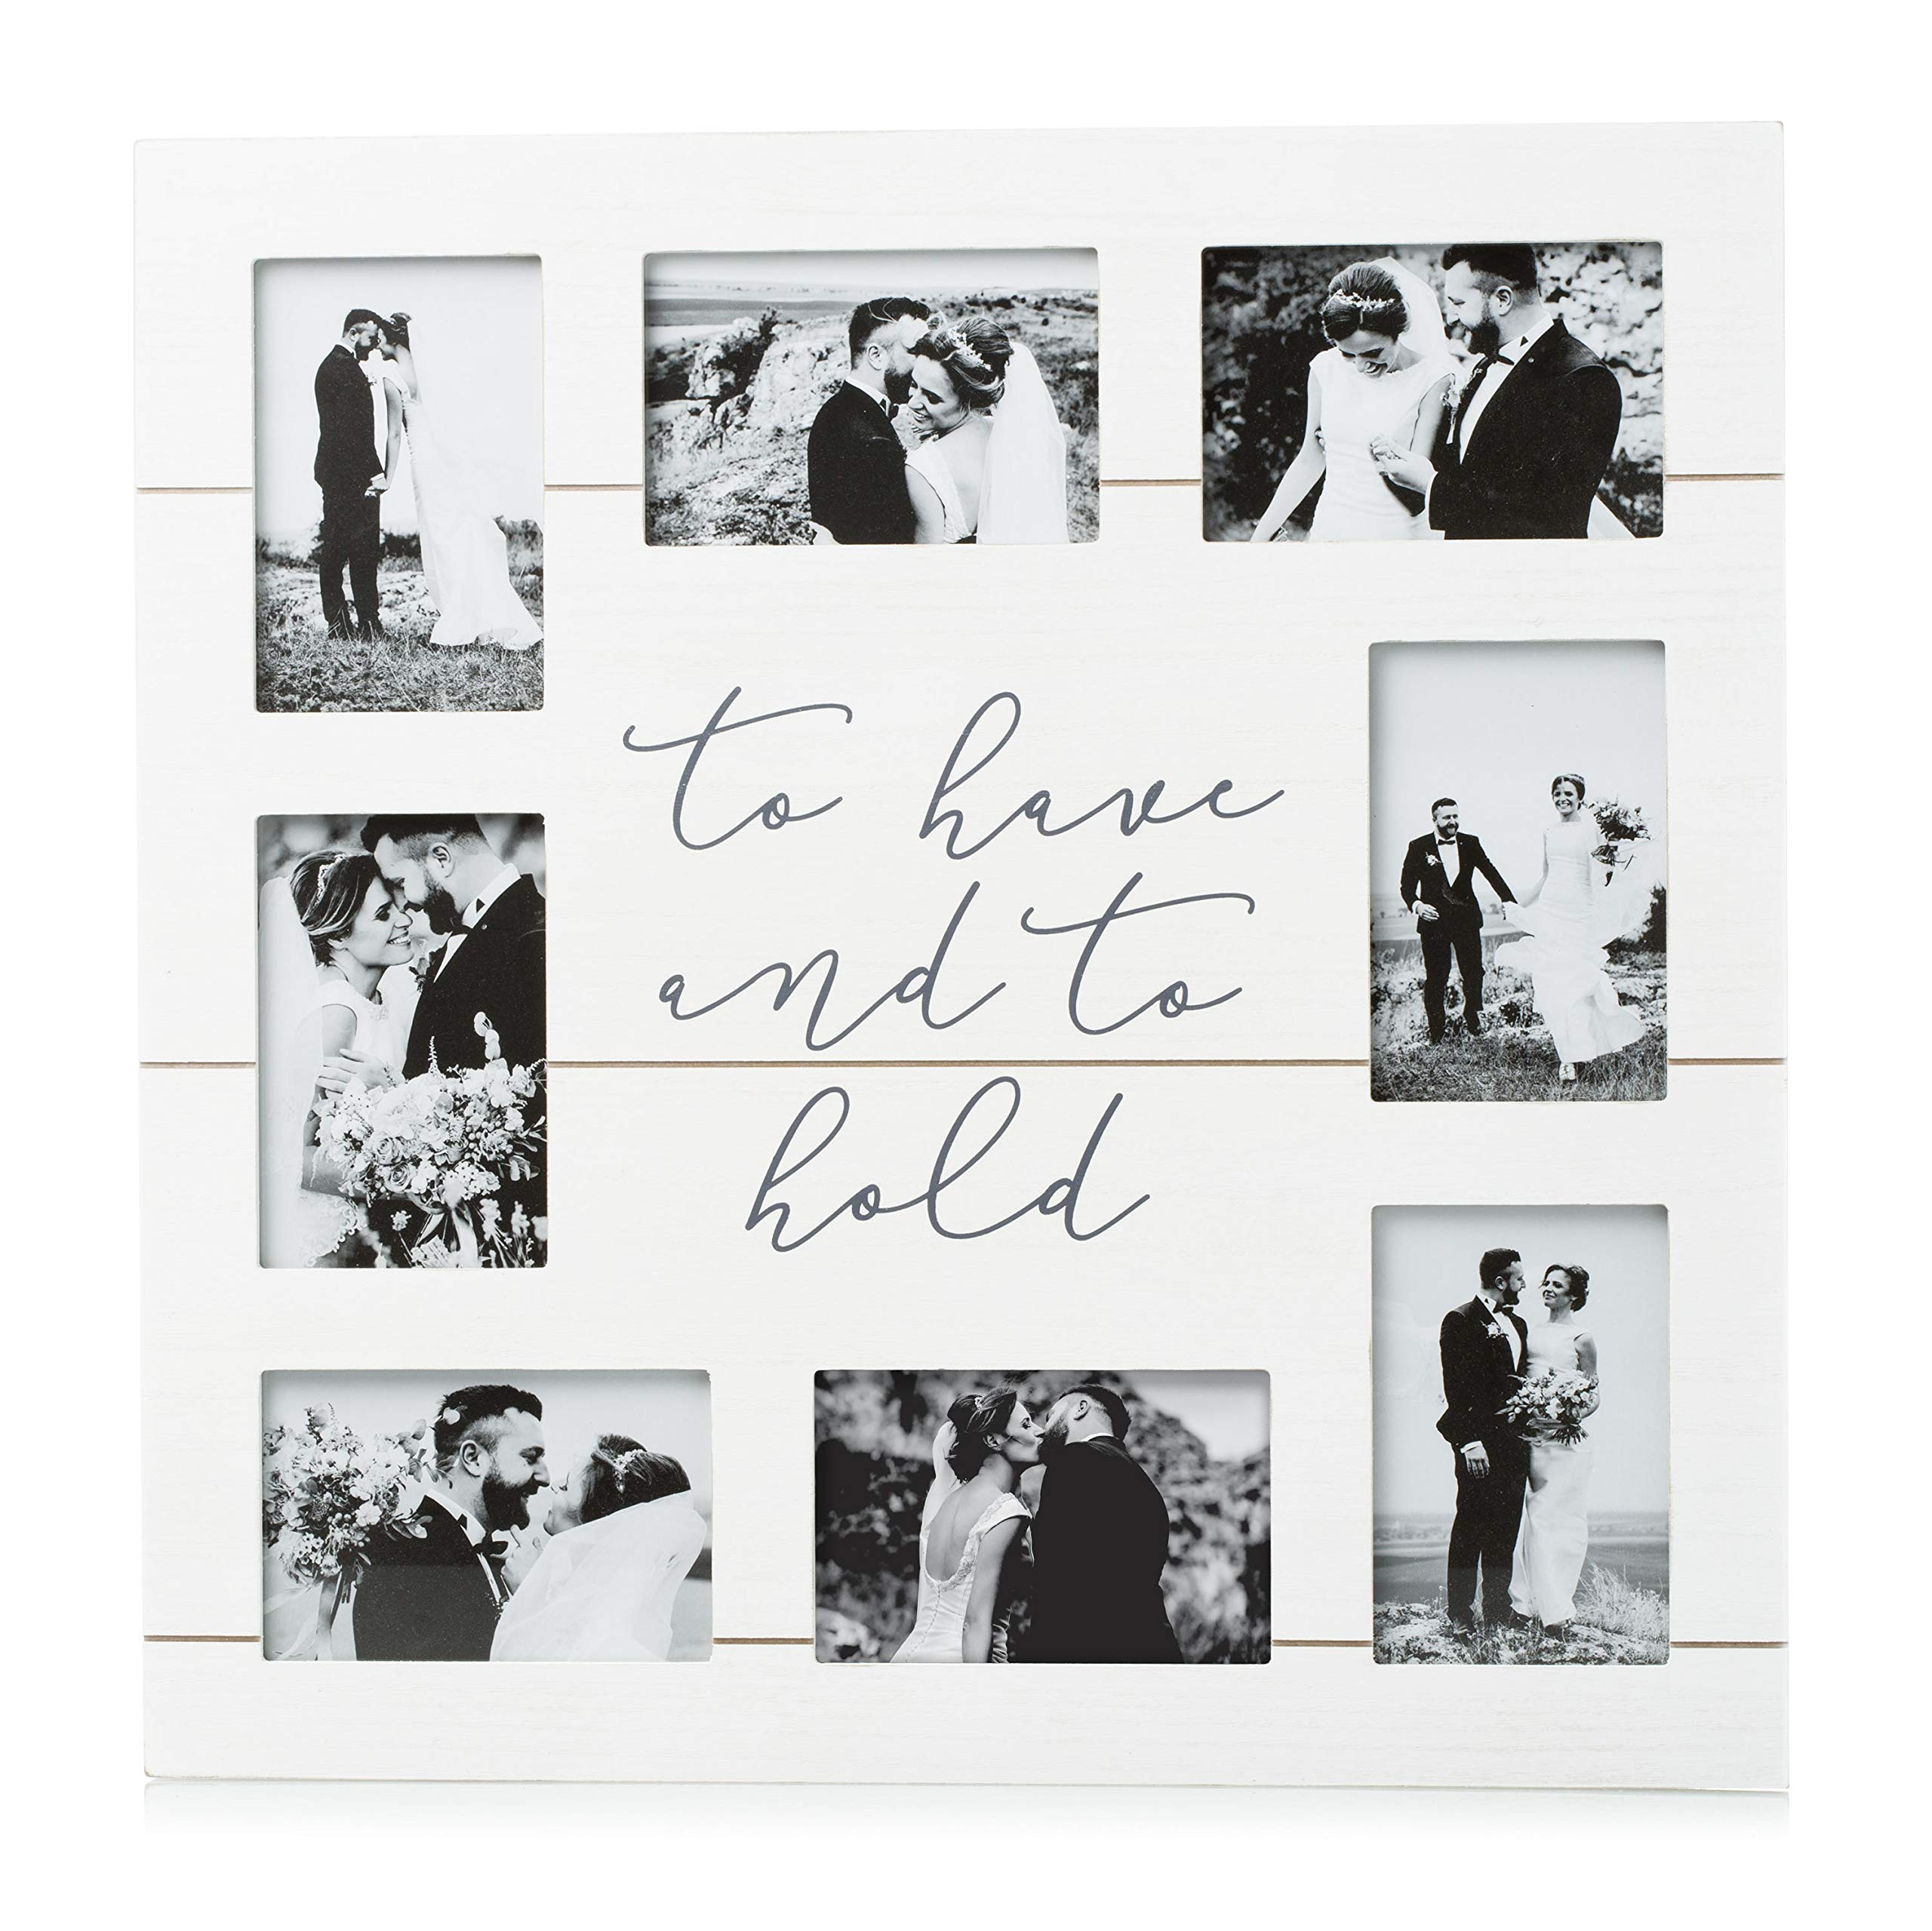 Pearhead Shiplap Wedding To Have and to Hold Collage Frame, Perfect Wedding Gift for The Bride and Groom, White by Pearhead